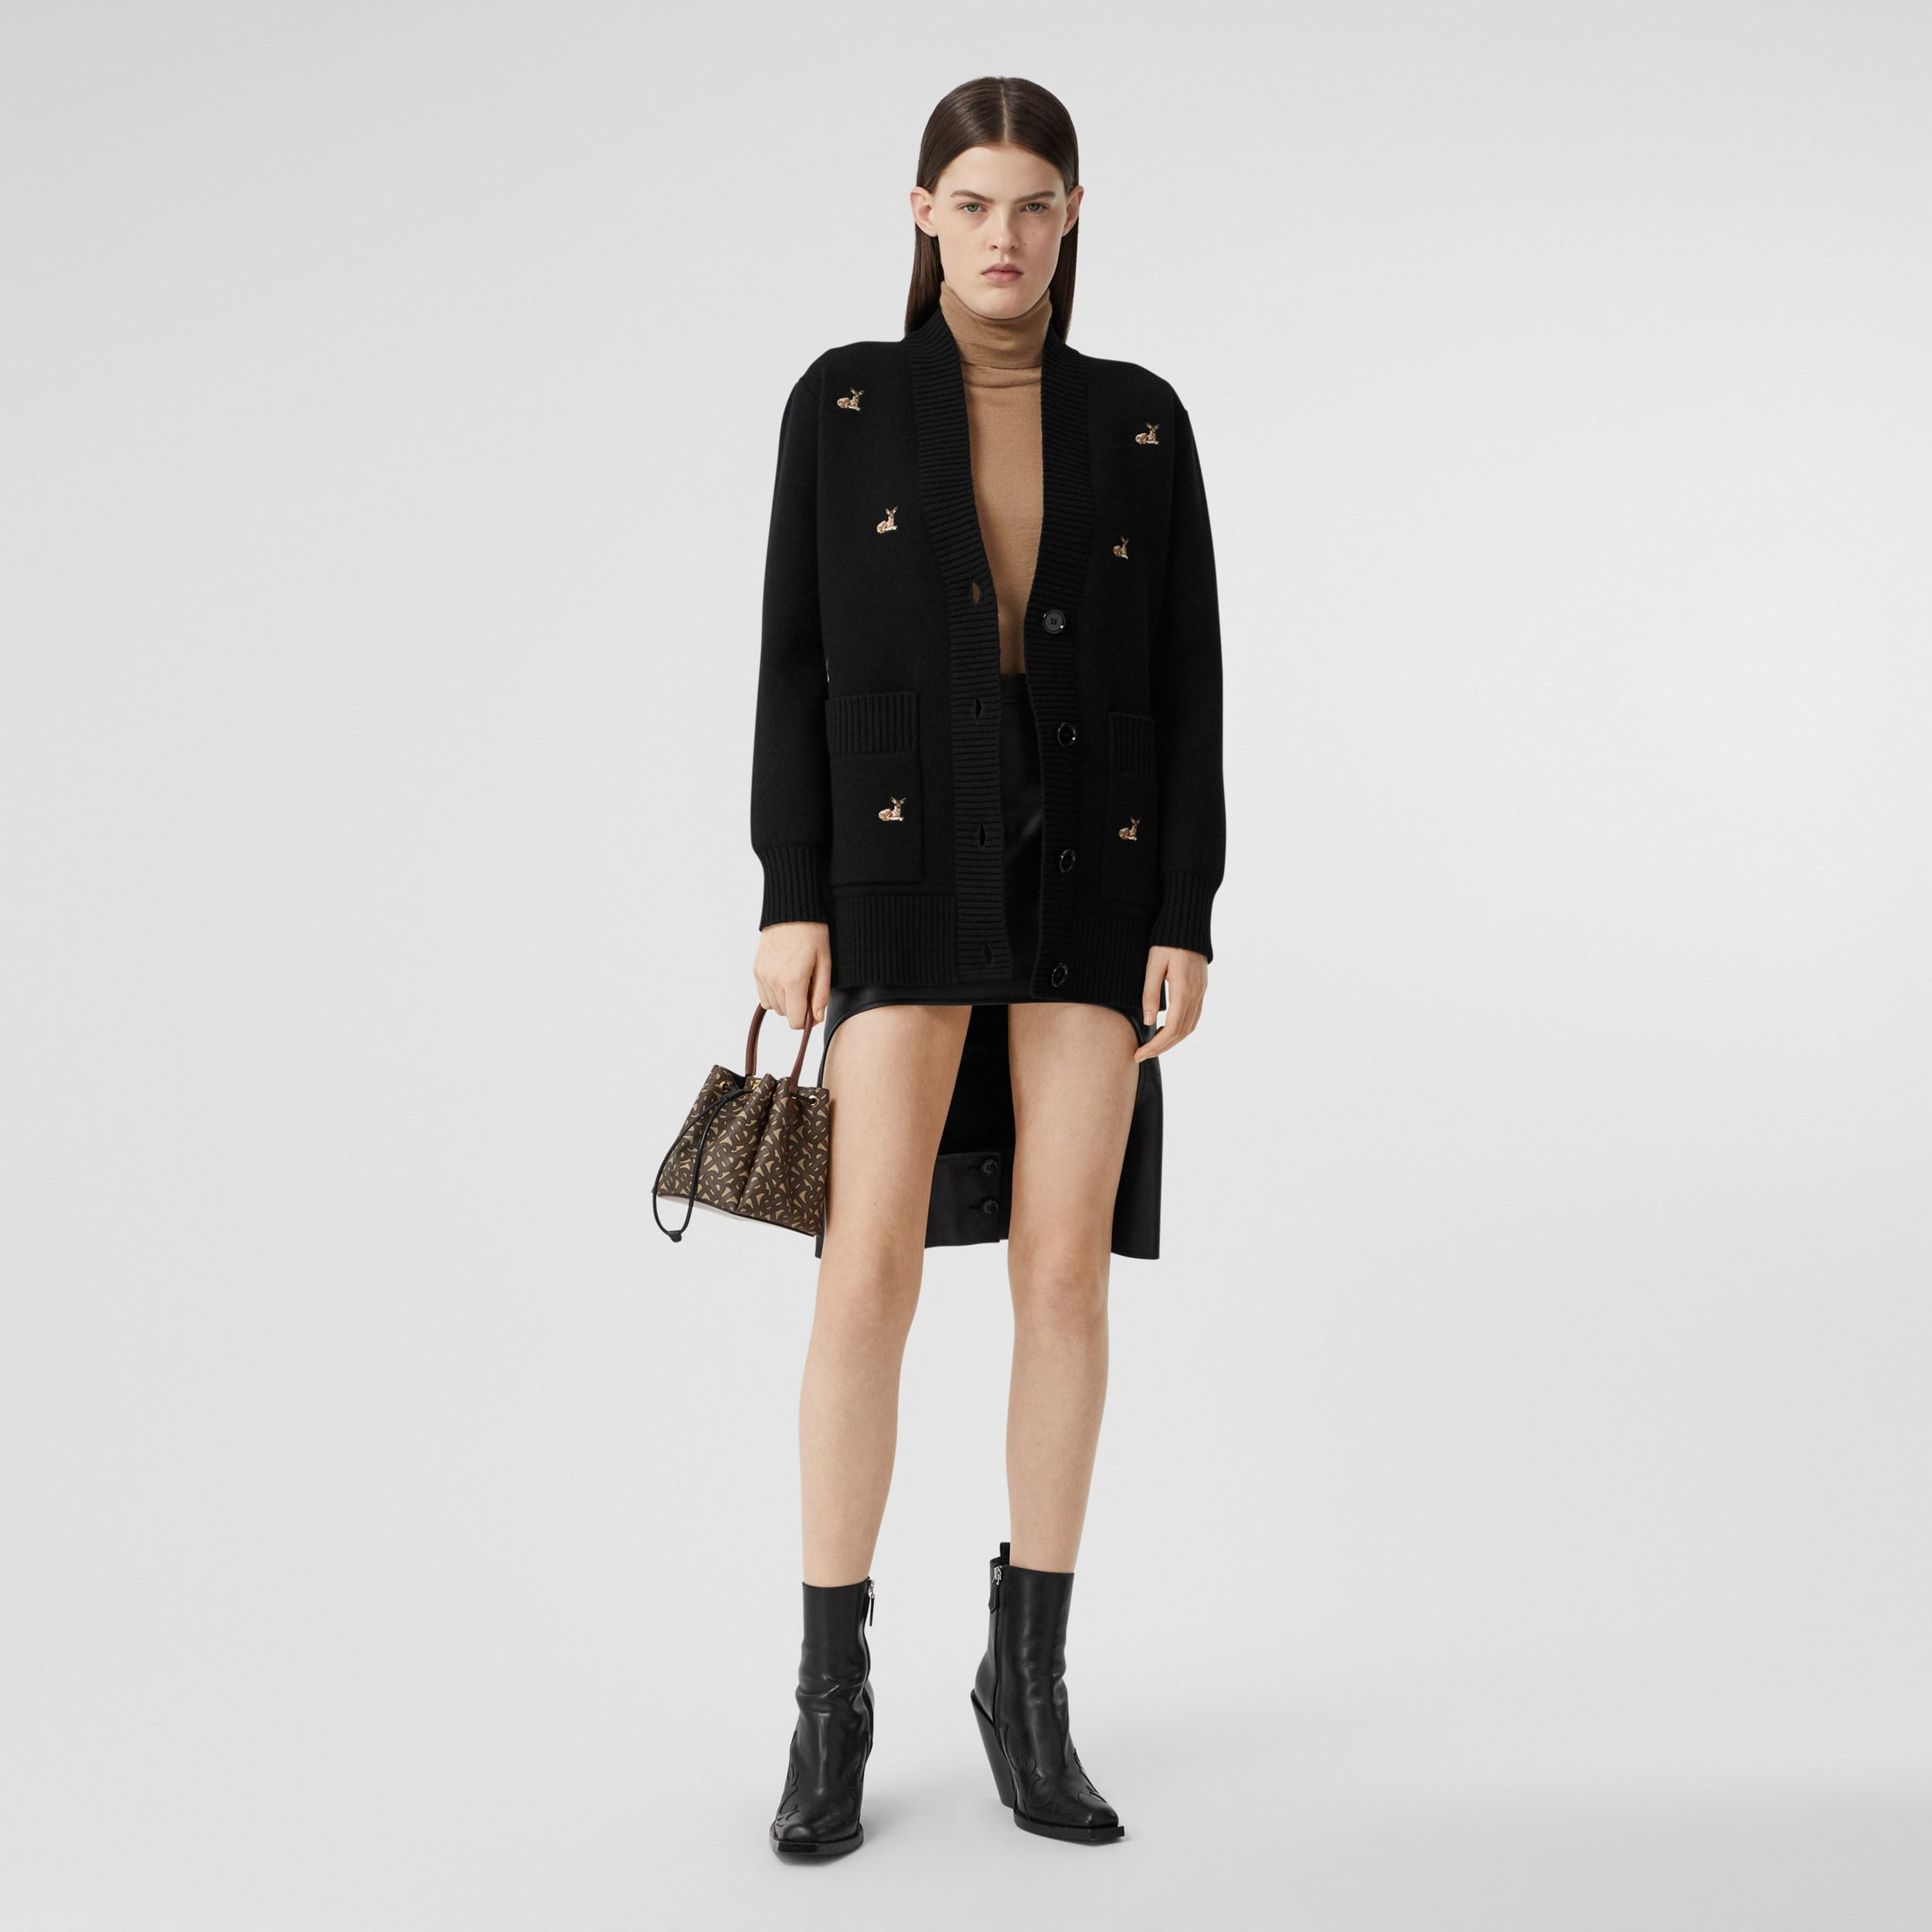 Deer Motif Wool Cashmere Blend Oversized Cardigan in Black - Women | Burberry - 1